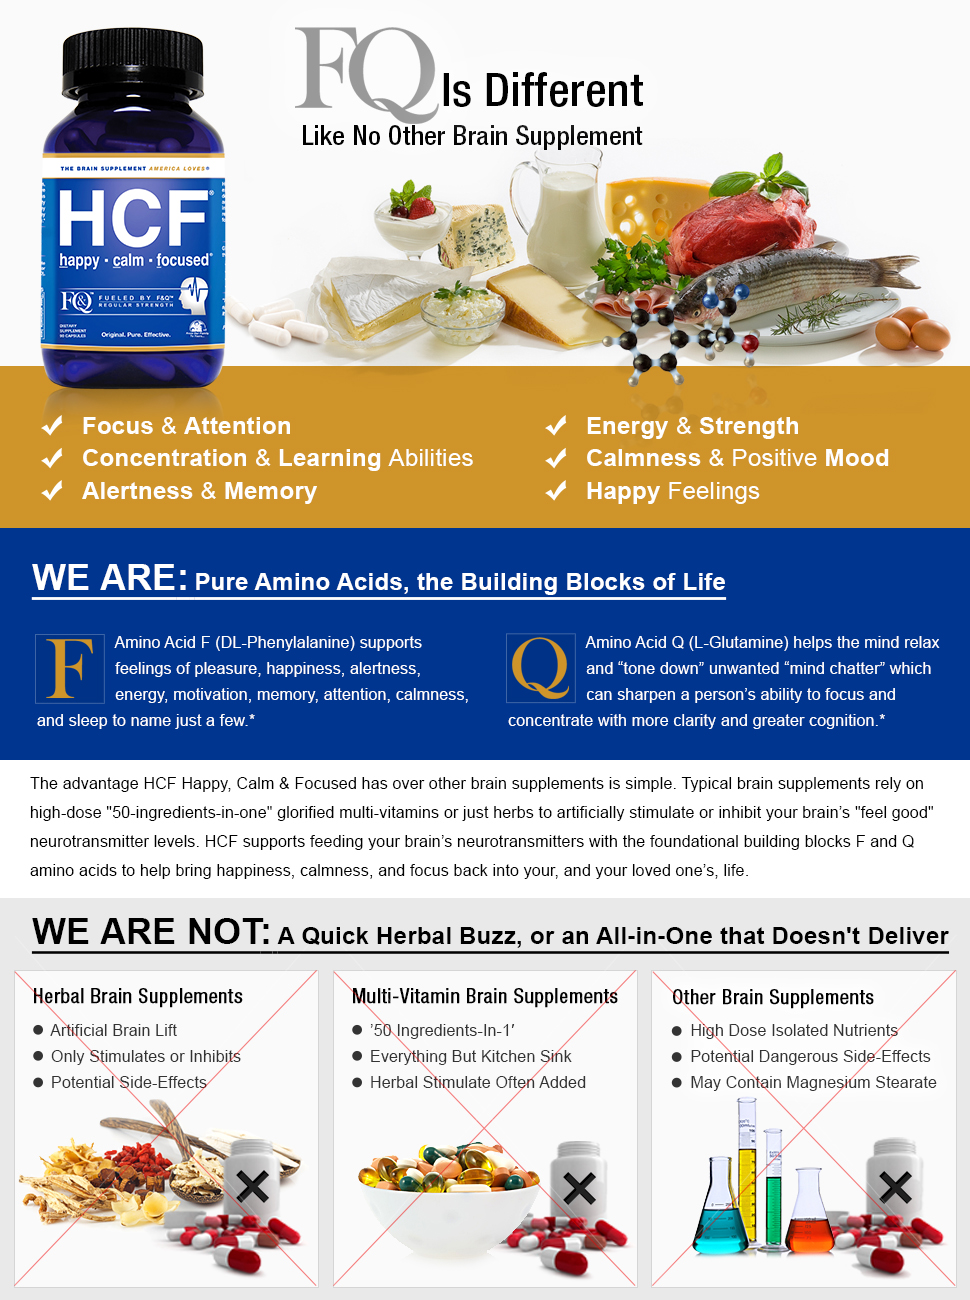 HCF Brain Supplement with Amino-Acids & Vitamins for Memory, Focus,  Attention, Mood, Energy  Improve